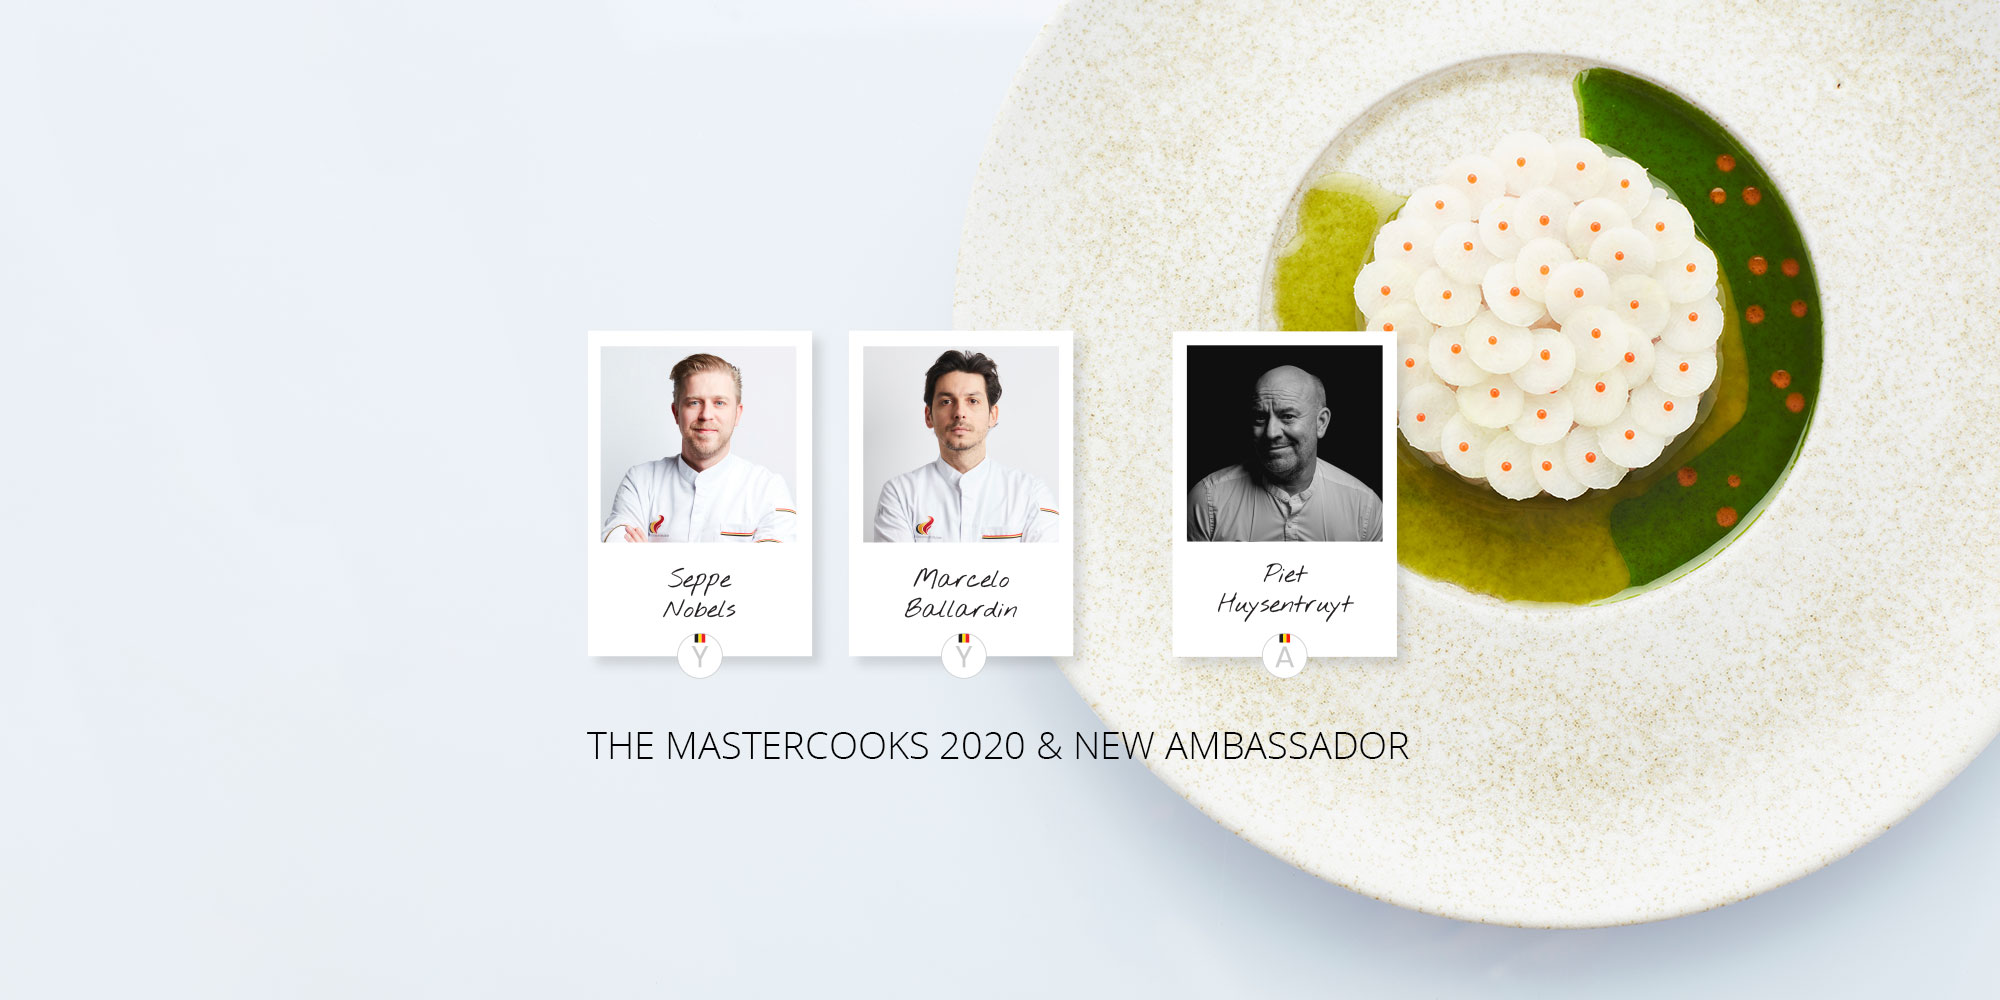 The Mastercooks 2020